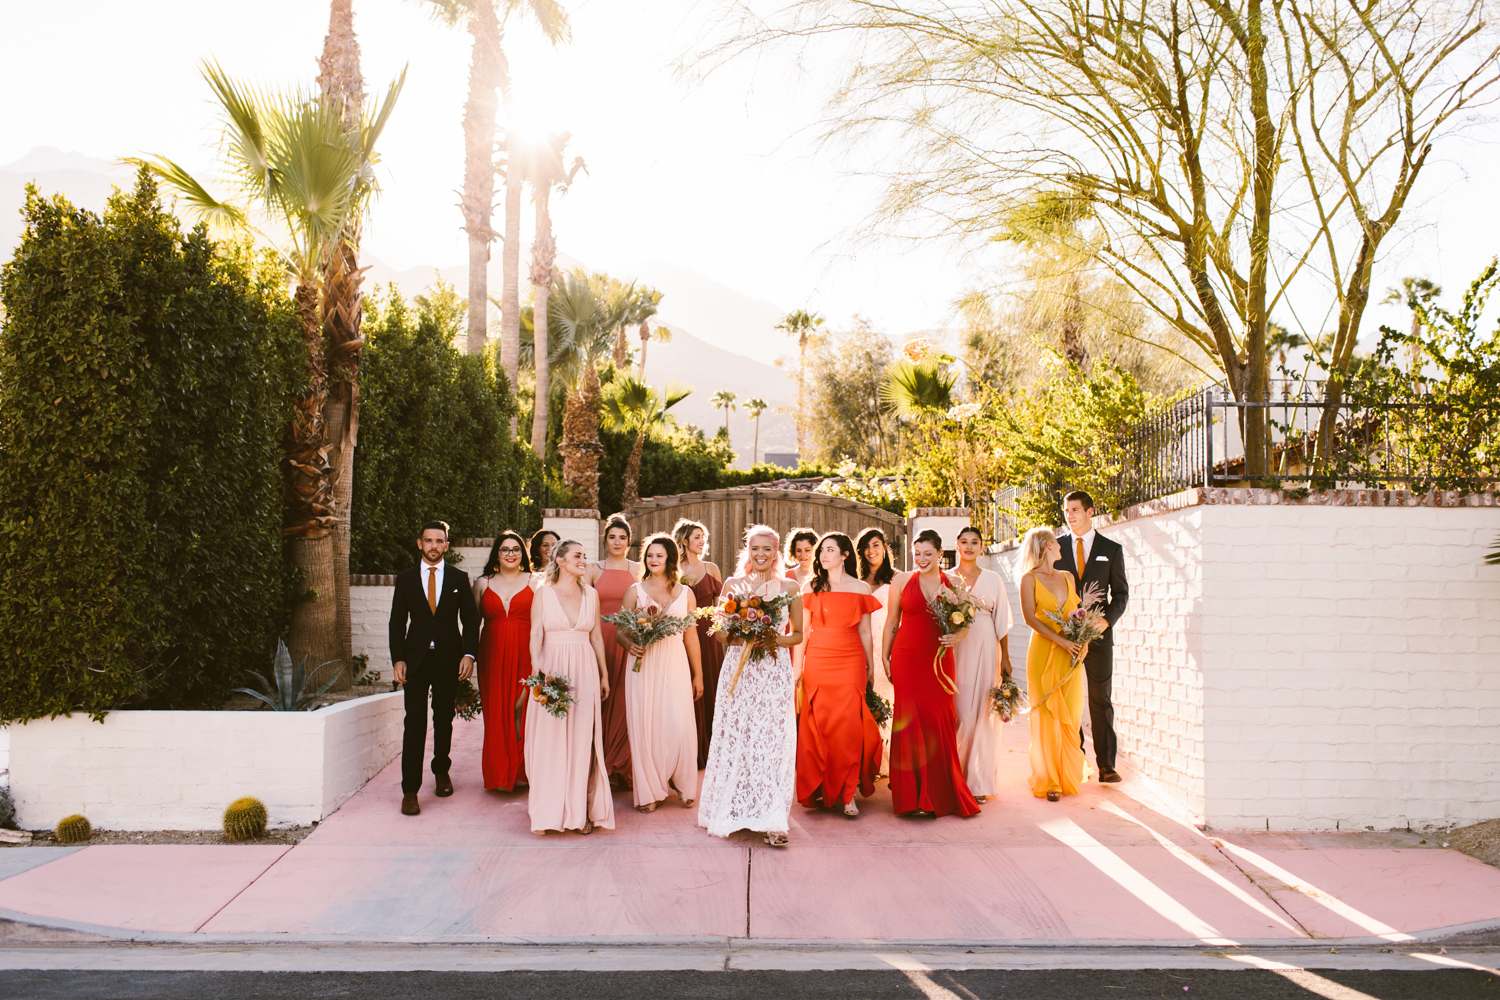 westlund-photography-palm-springs-wedding-30.jpg